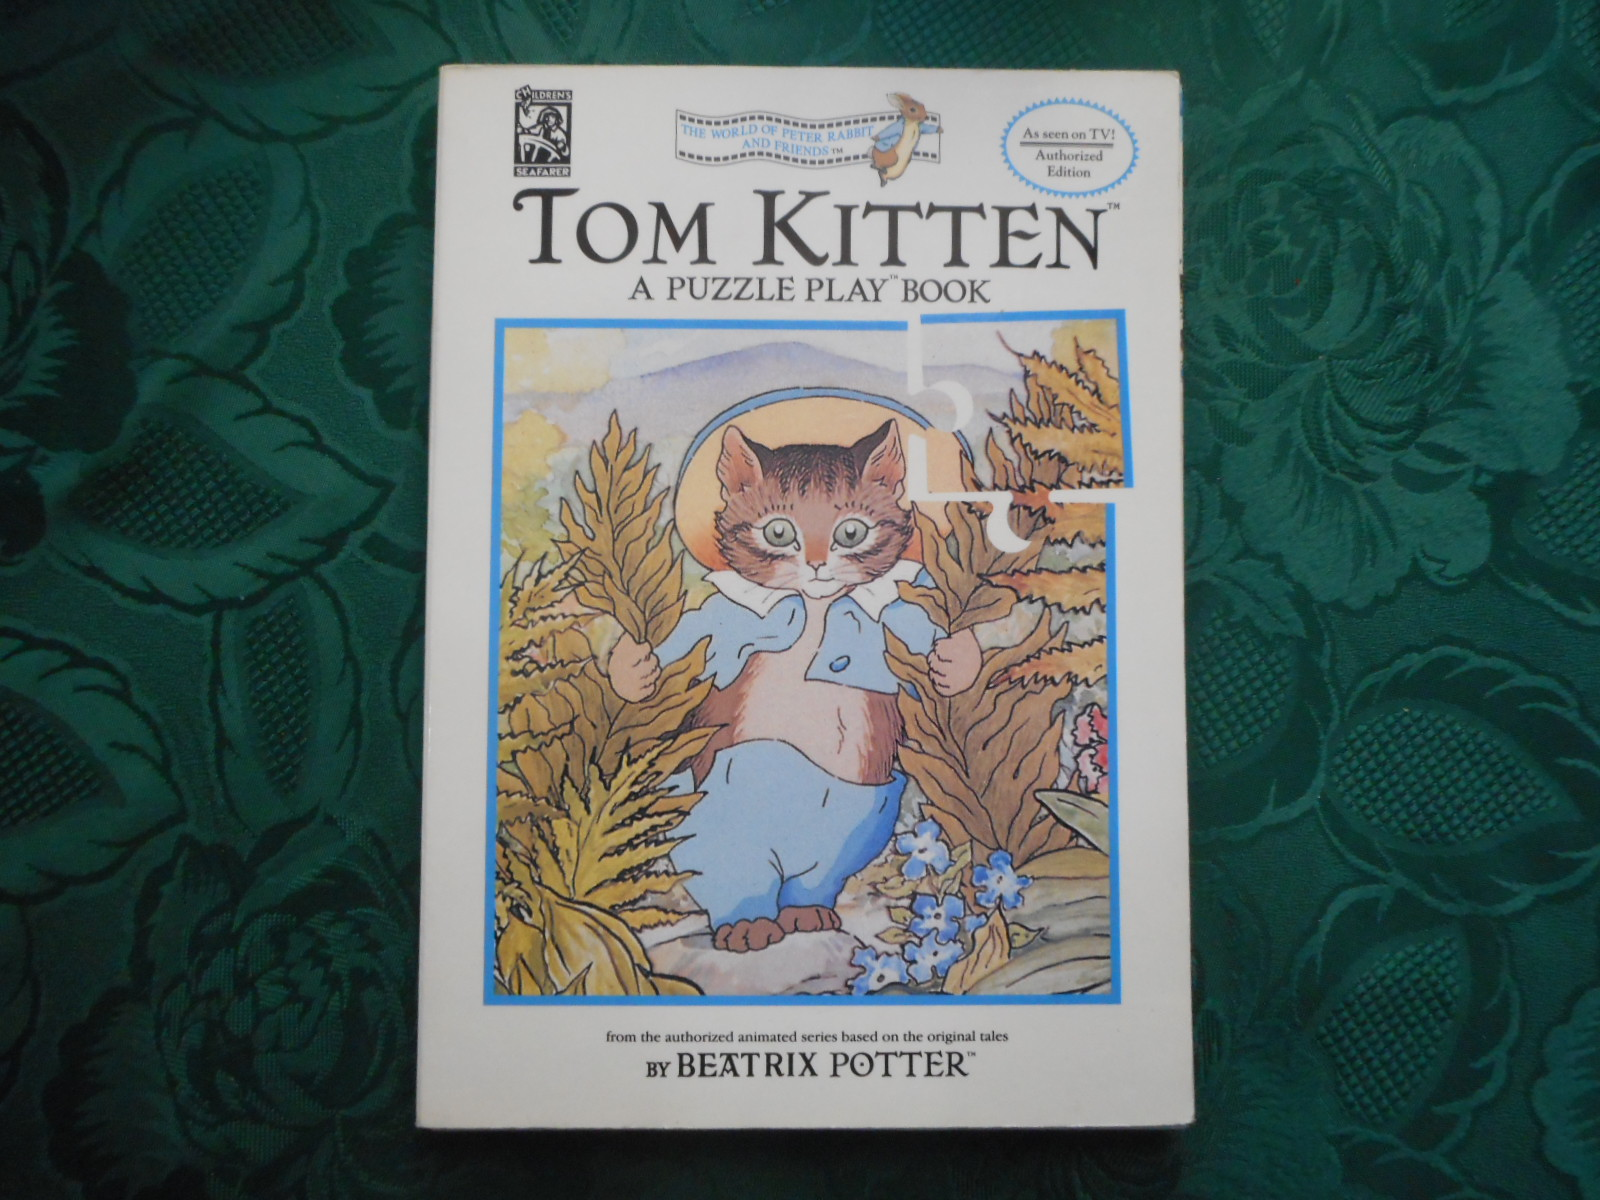 Tom Kitten. A Puzzle Play Book